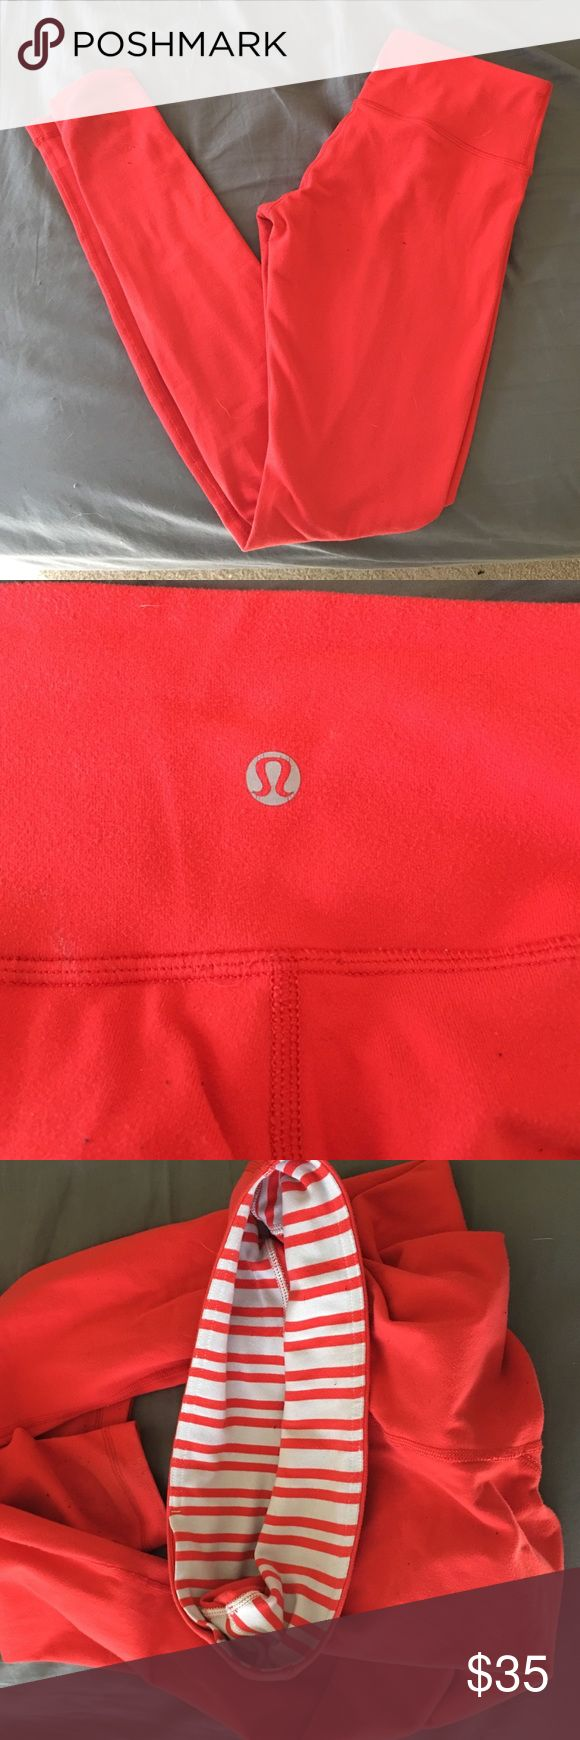 Lululemon wonder under red leggings I believe these are wunder under leggings. Size 6 with a striped band inside the top. Good condition with some pilling on the bottom back where you might put them past your heels. To be it's an orange red color. Please let me know if you have any questions. lululemon athletica Pants Leggings